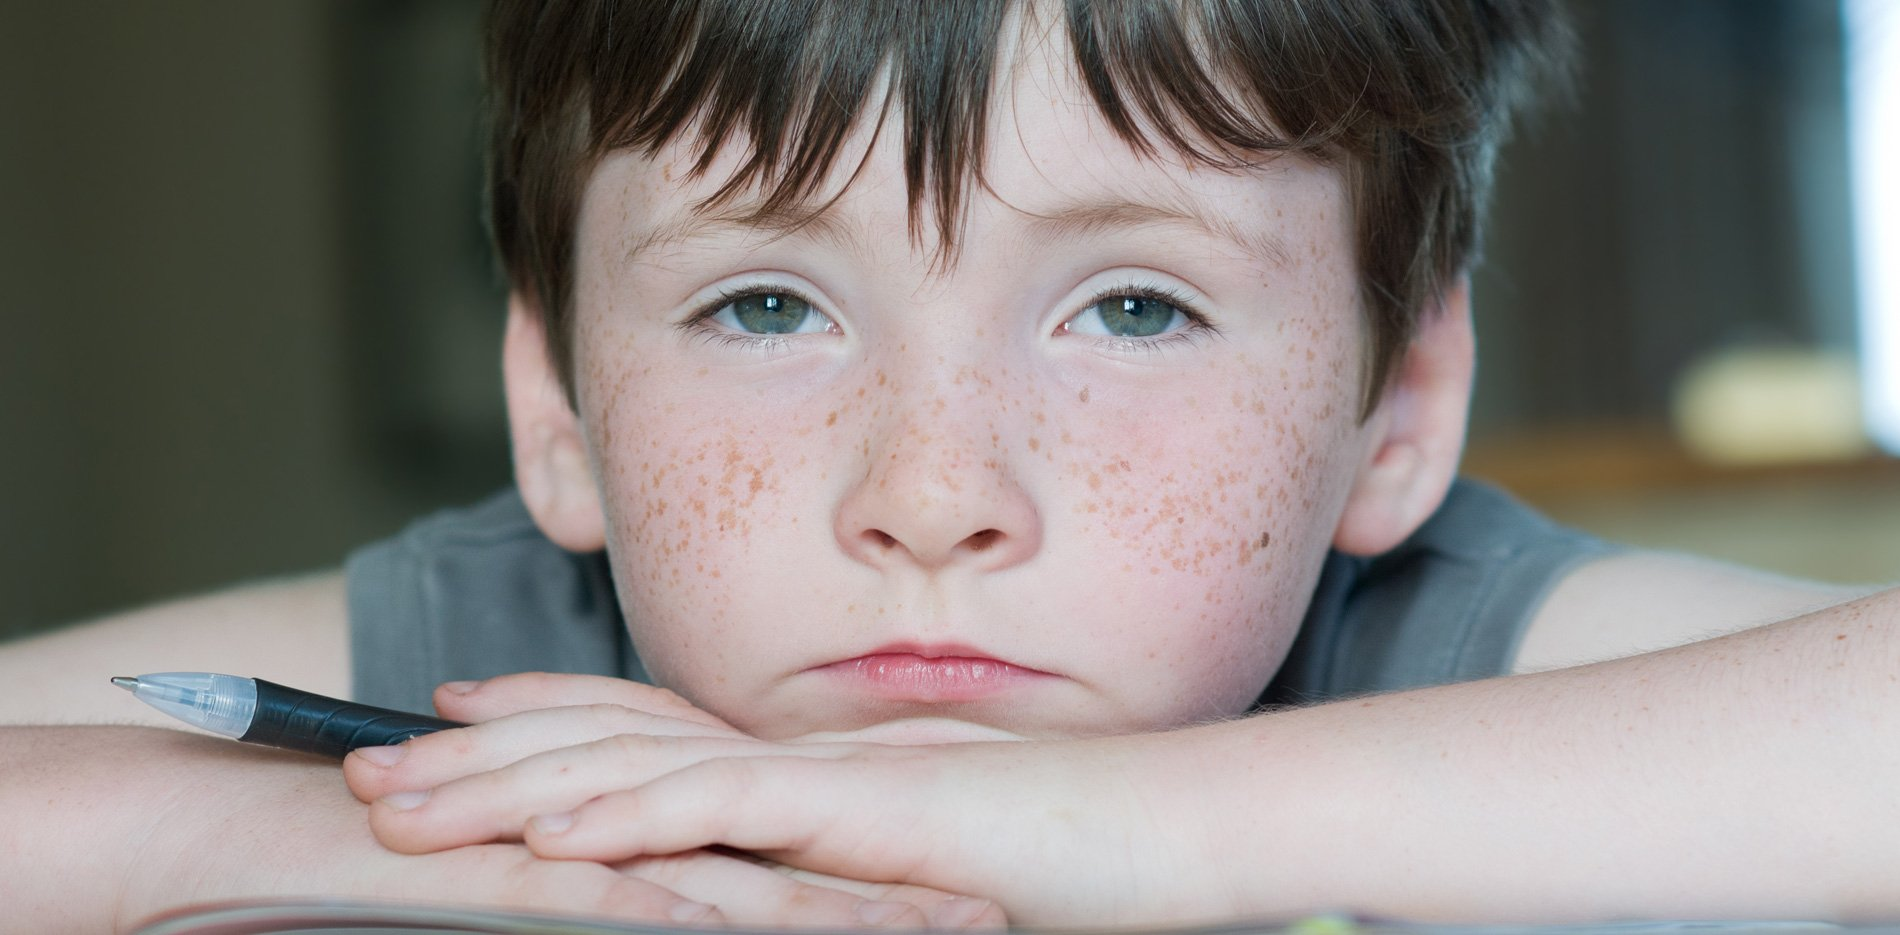 Freckled boy with pensive look